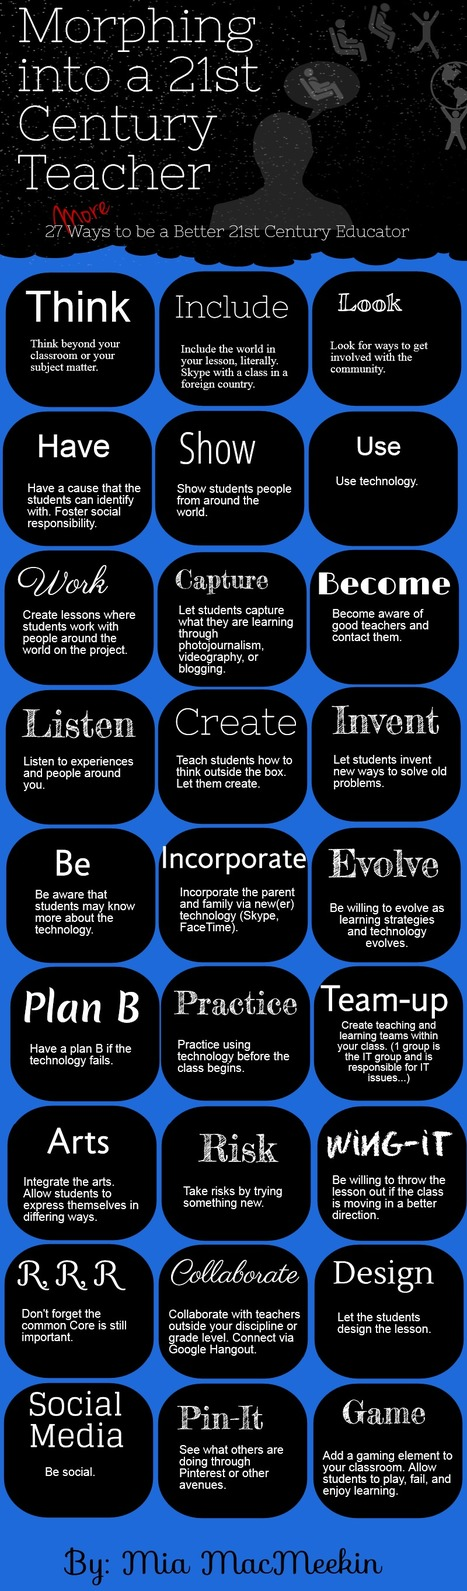 27 Ways to be a Better 21st century Teacher [infographic] | eLearning Tools & Tips | Scoop.it